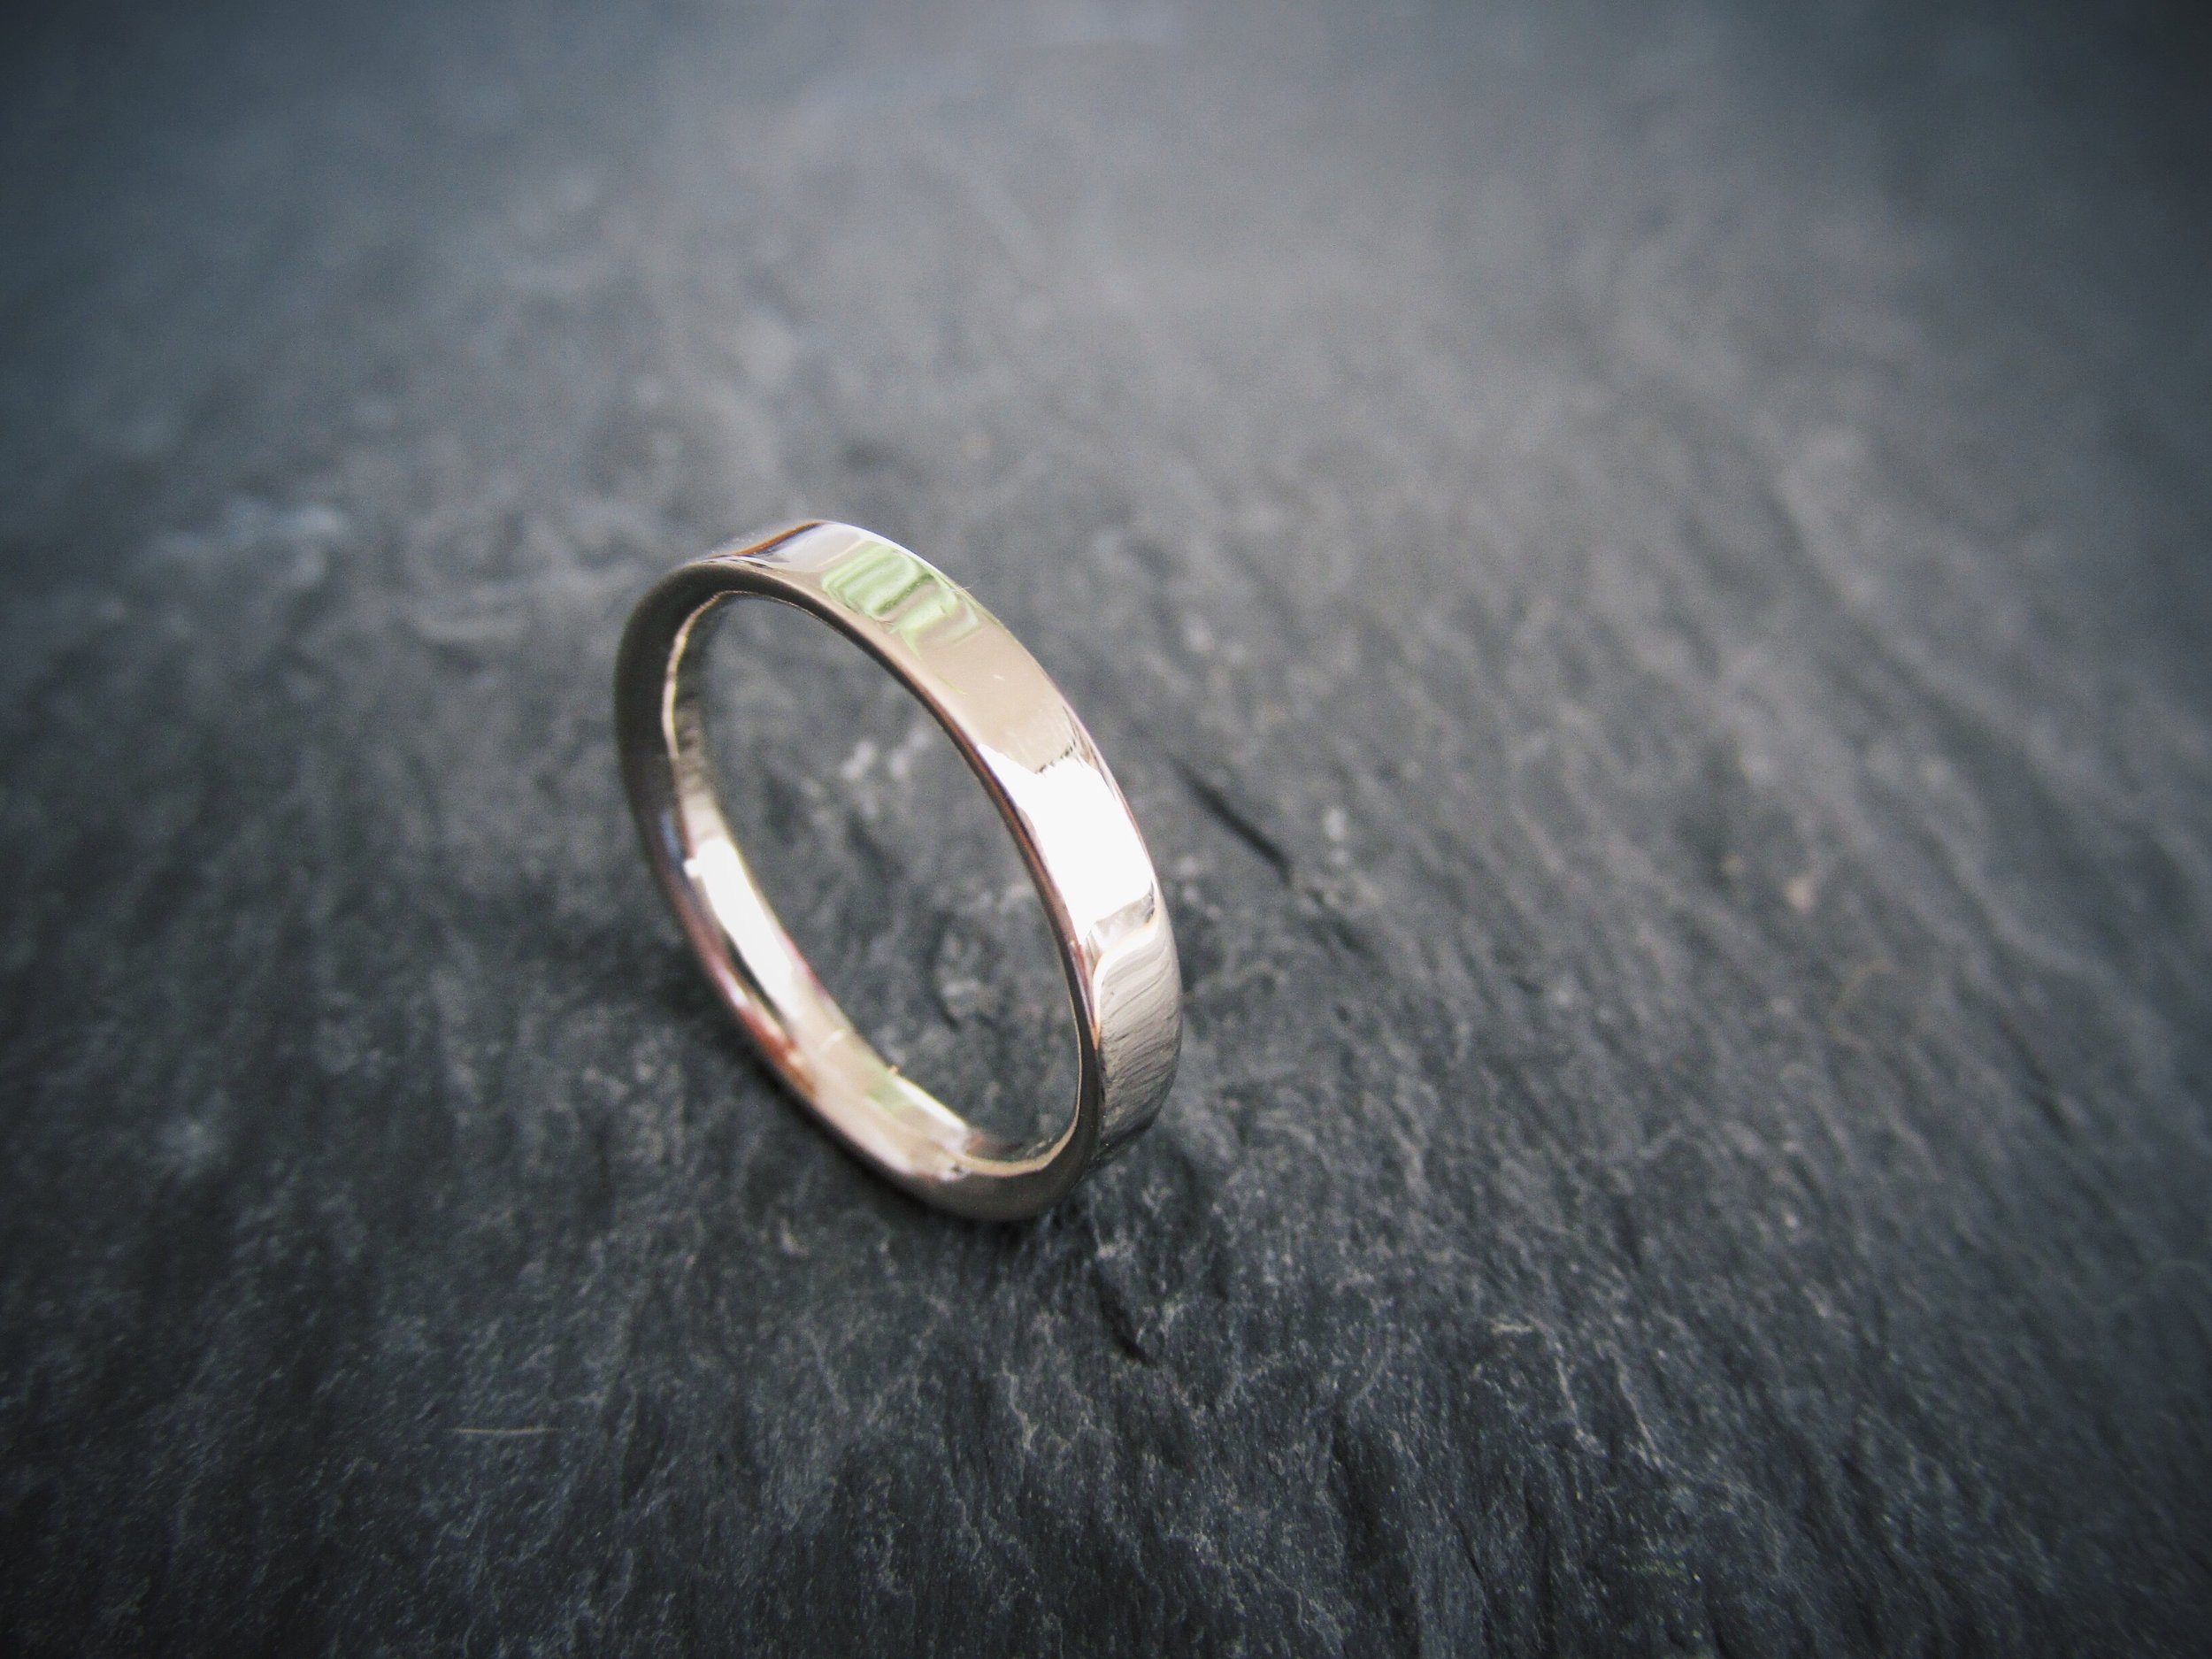 Women's Inside Out Wedding Band. Starting at $350